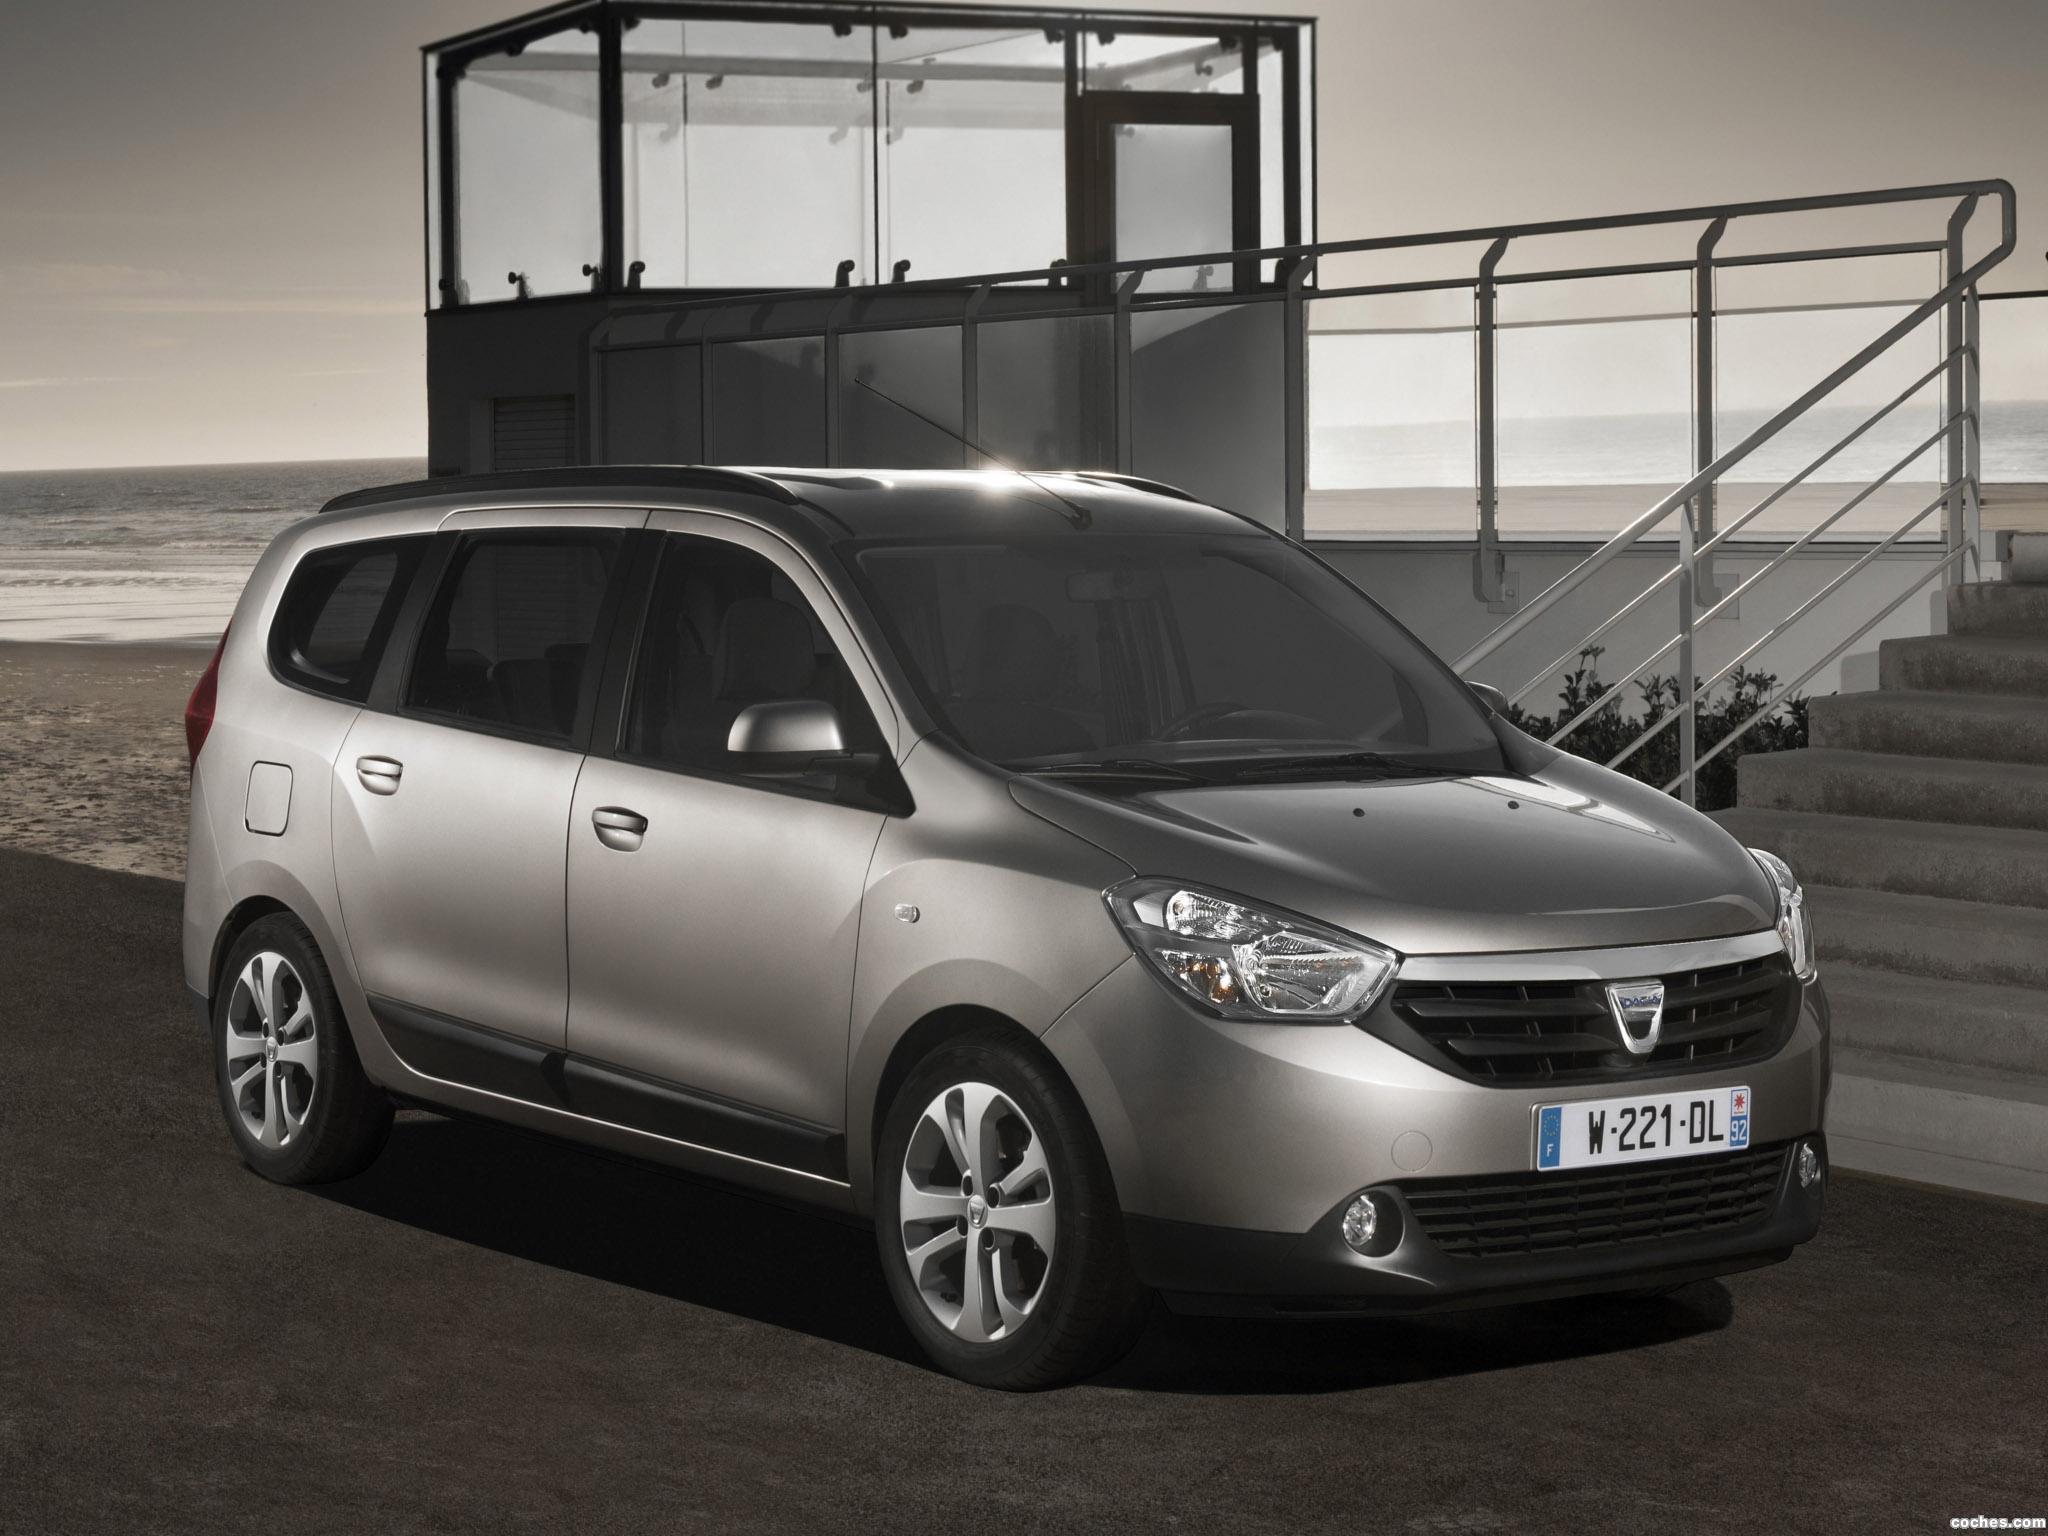 2012 Dacia Lodgy Mpv 5-door